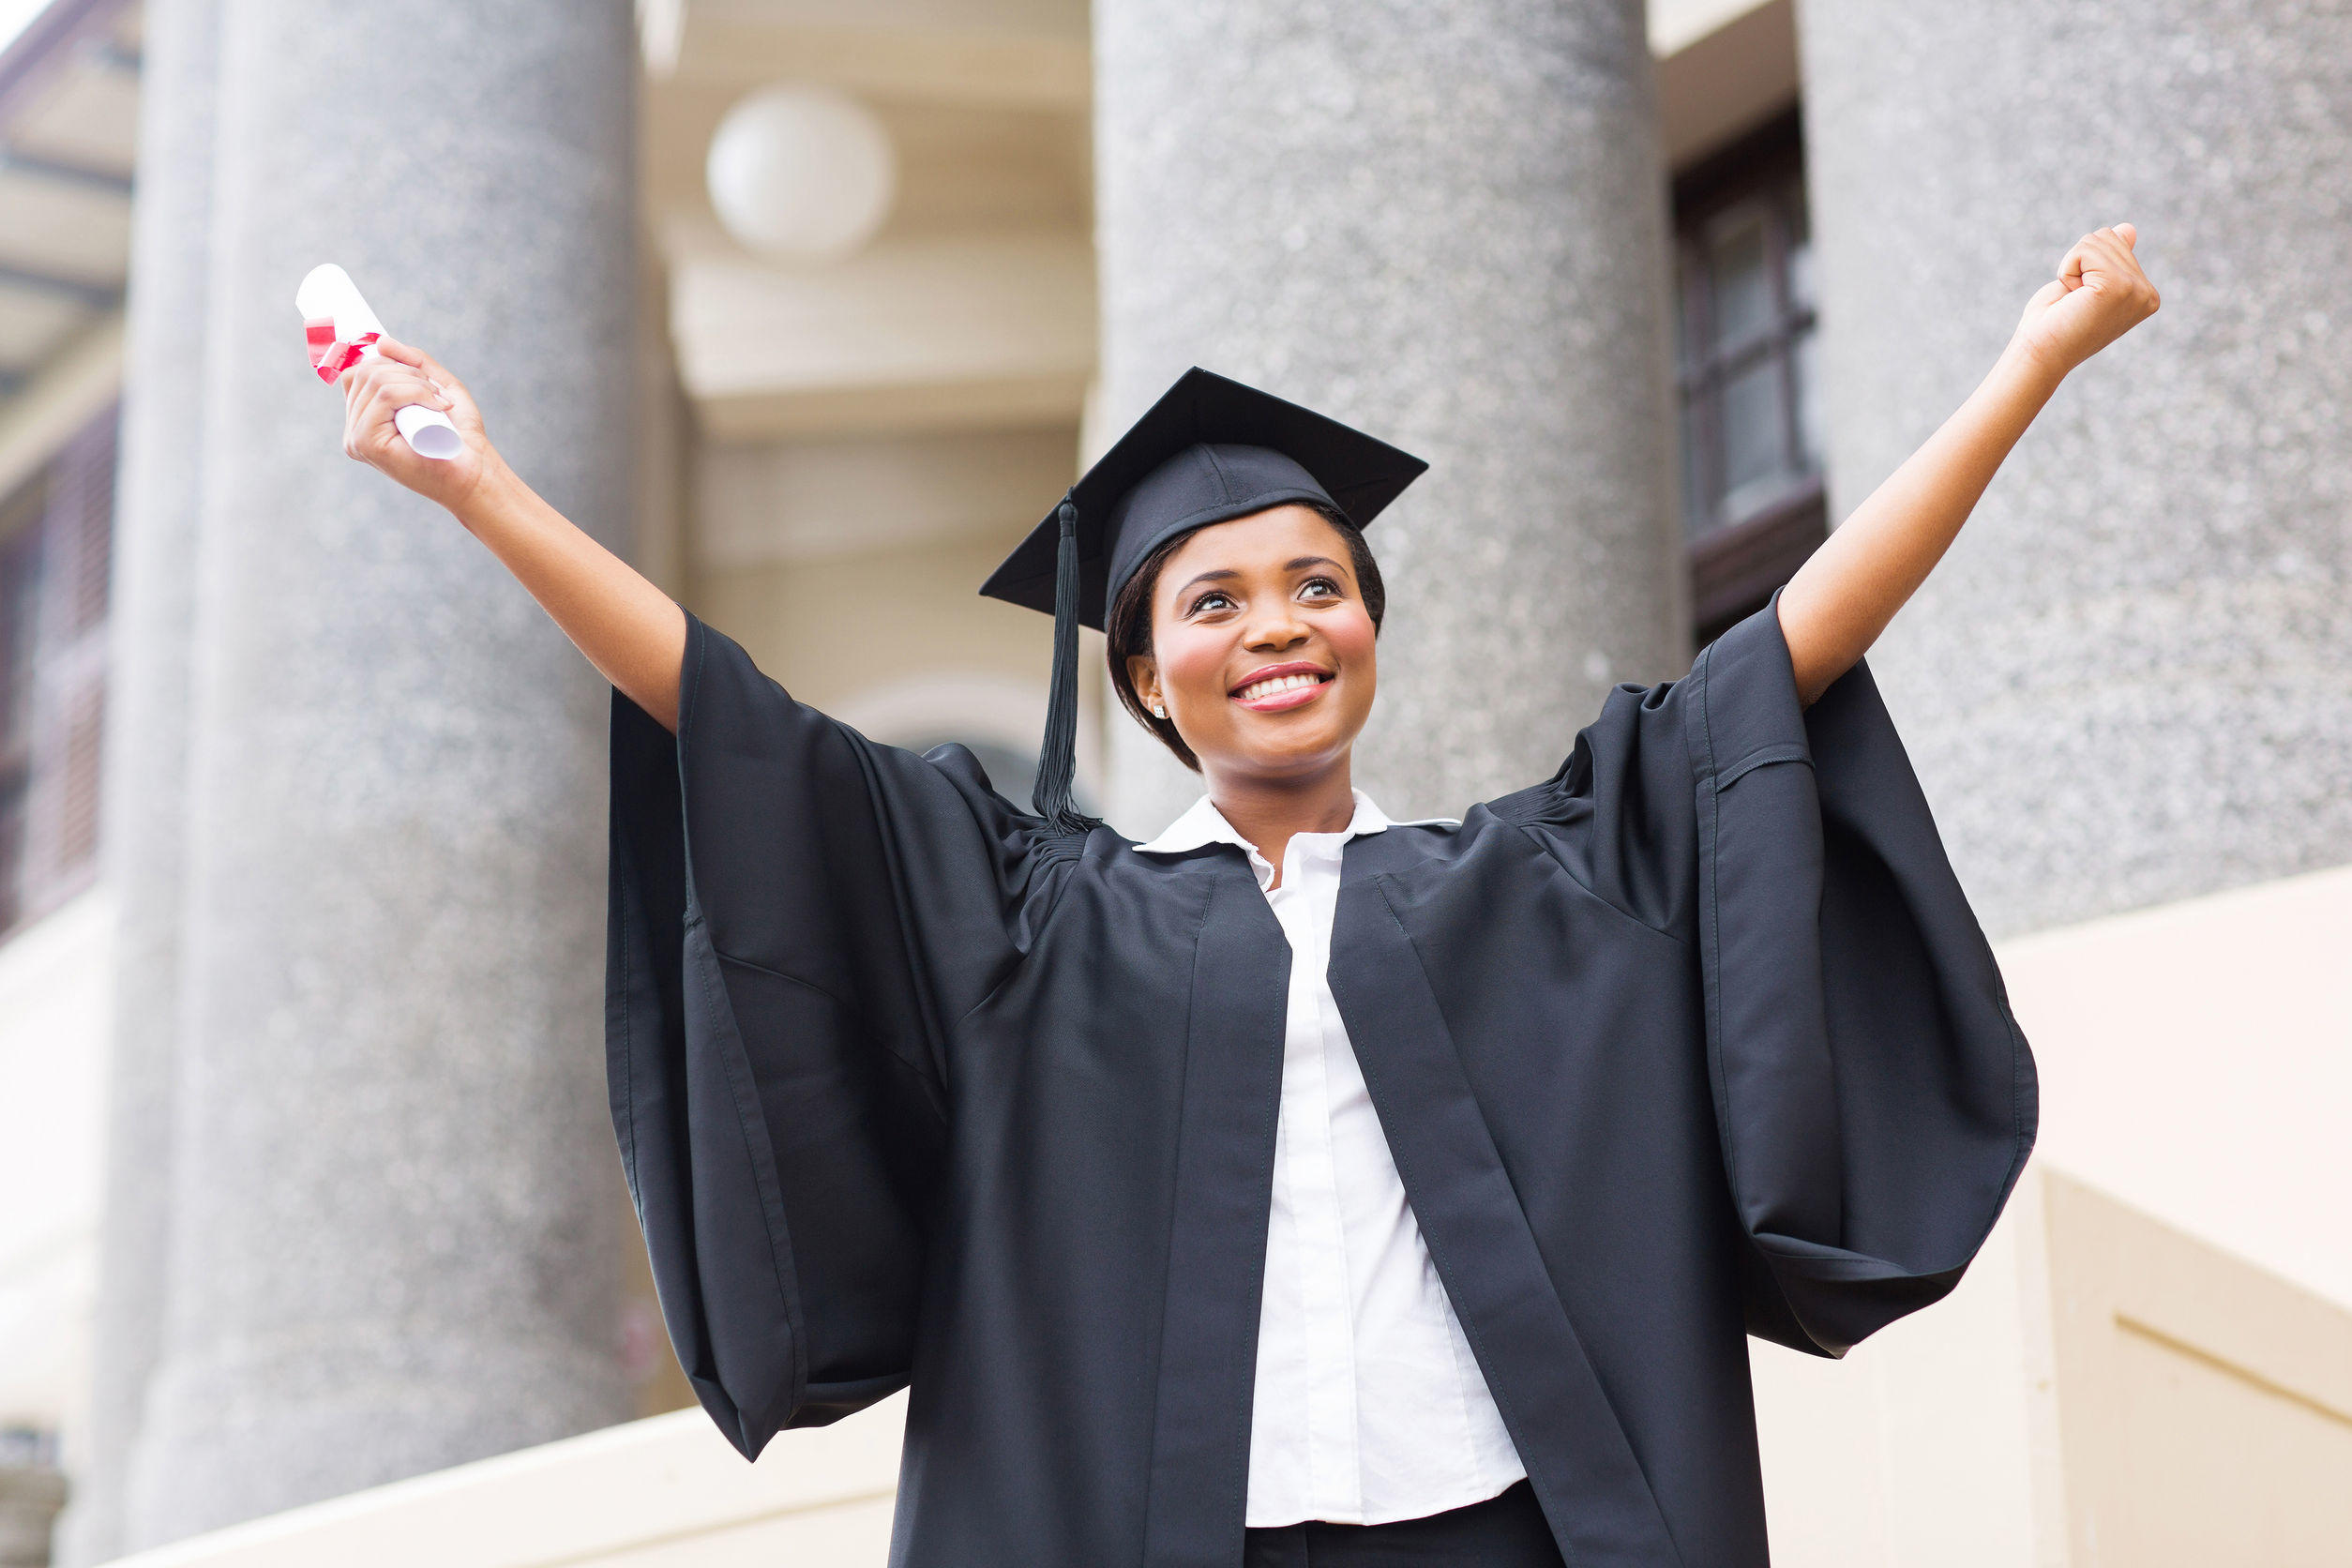 26458463 – happy african american female student with diploma at graduation